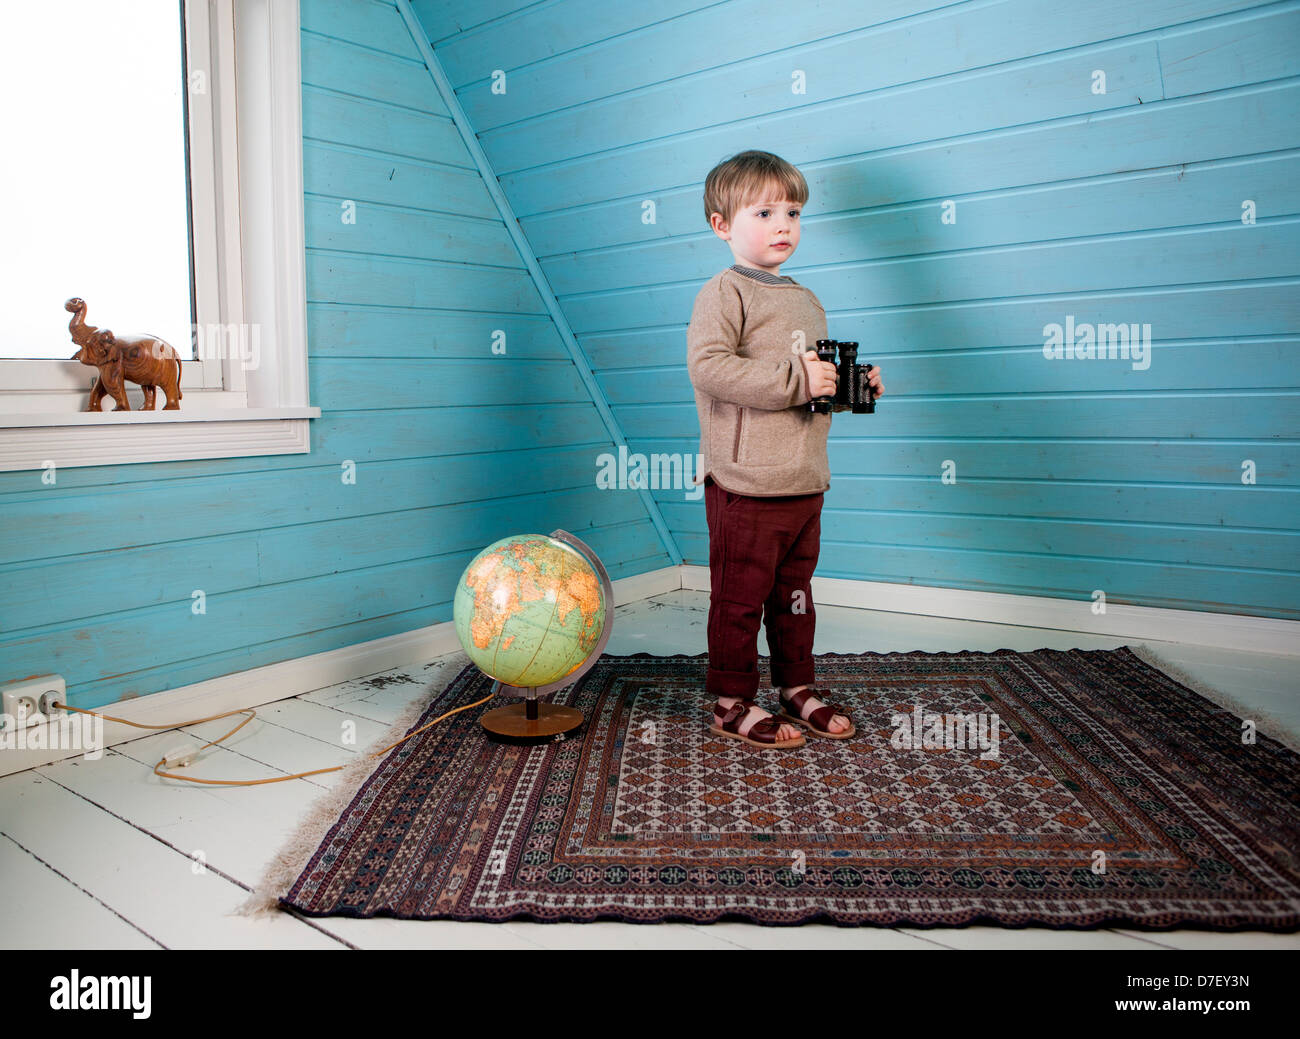 Little boy holding binoculars in his hands standing next to a illuminated globe showing and wooden carved elephant - Stock Image